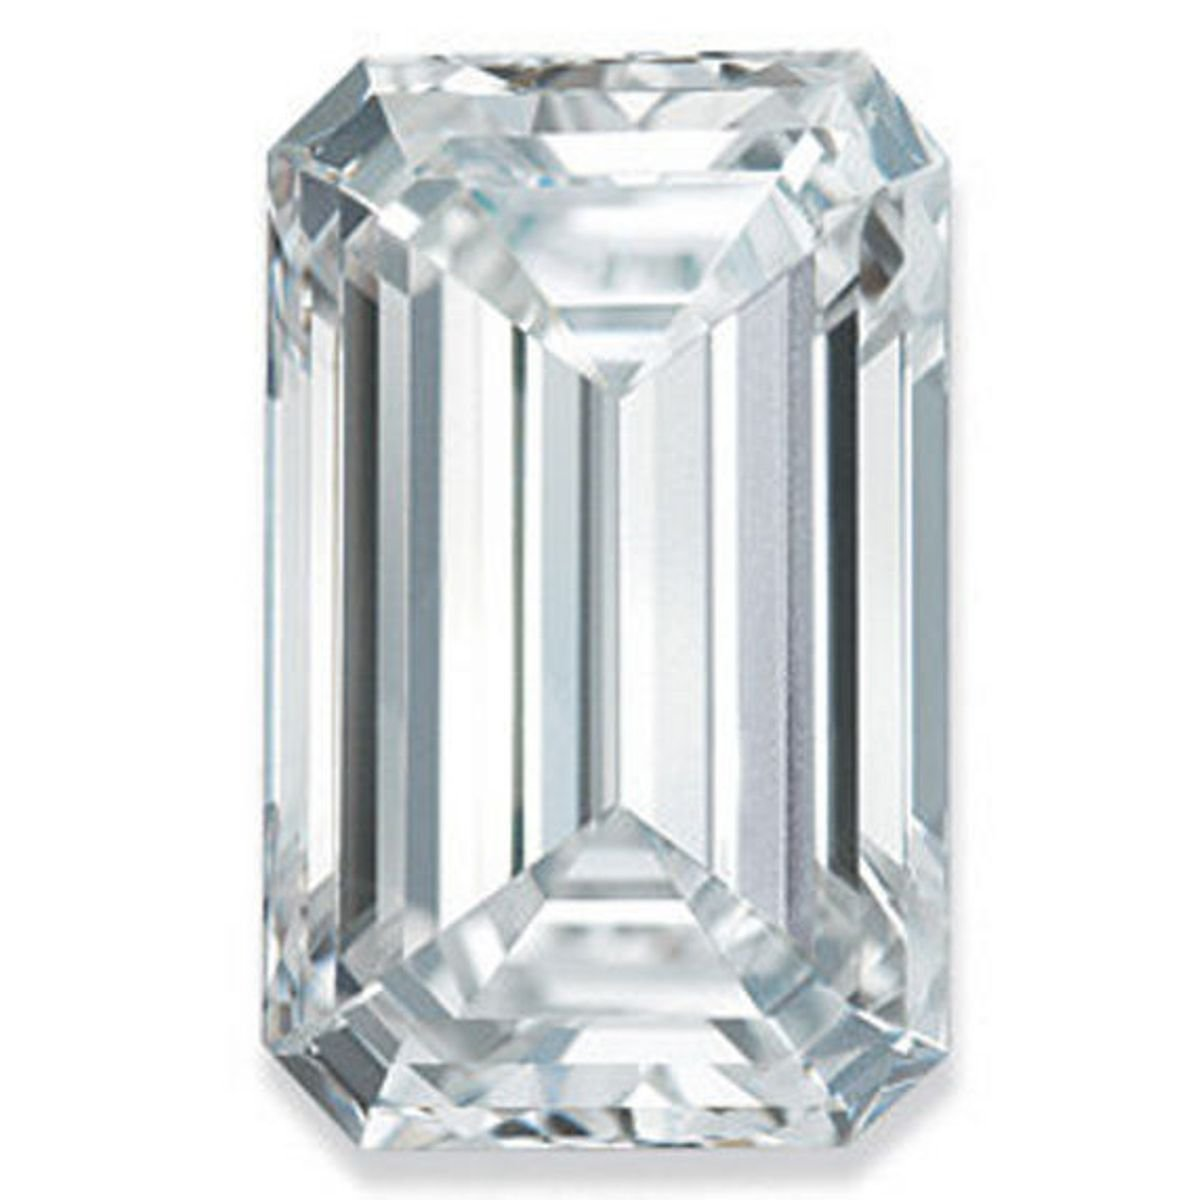 RINGJEWEL 2.86 ct VVS1 Emerald Cut Real Loose Moissanite Use 4 Pendant/Ring Genuine White I-J Color